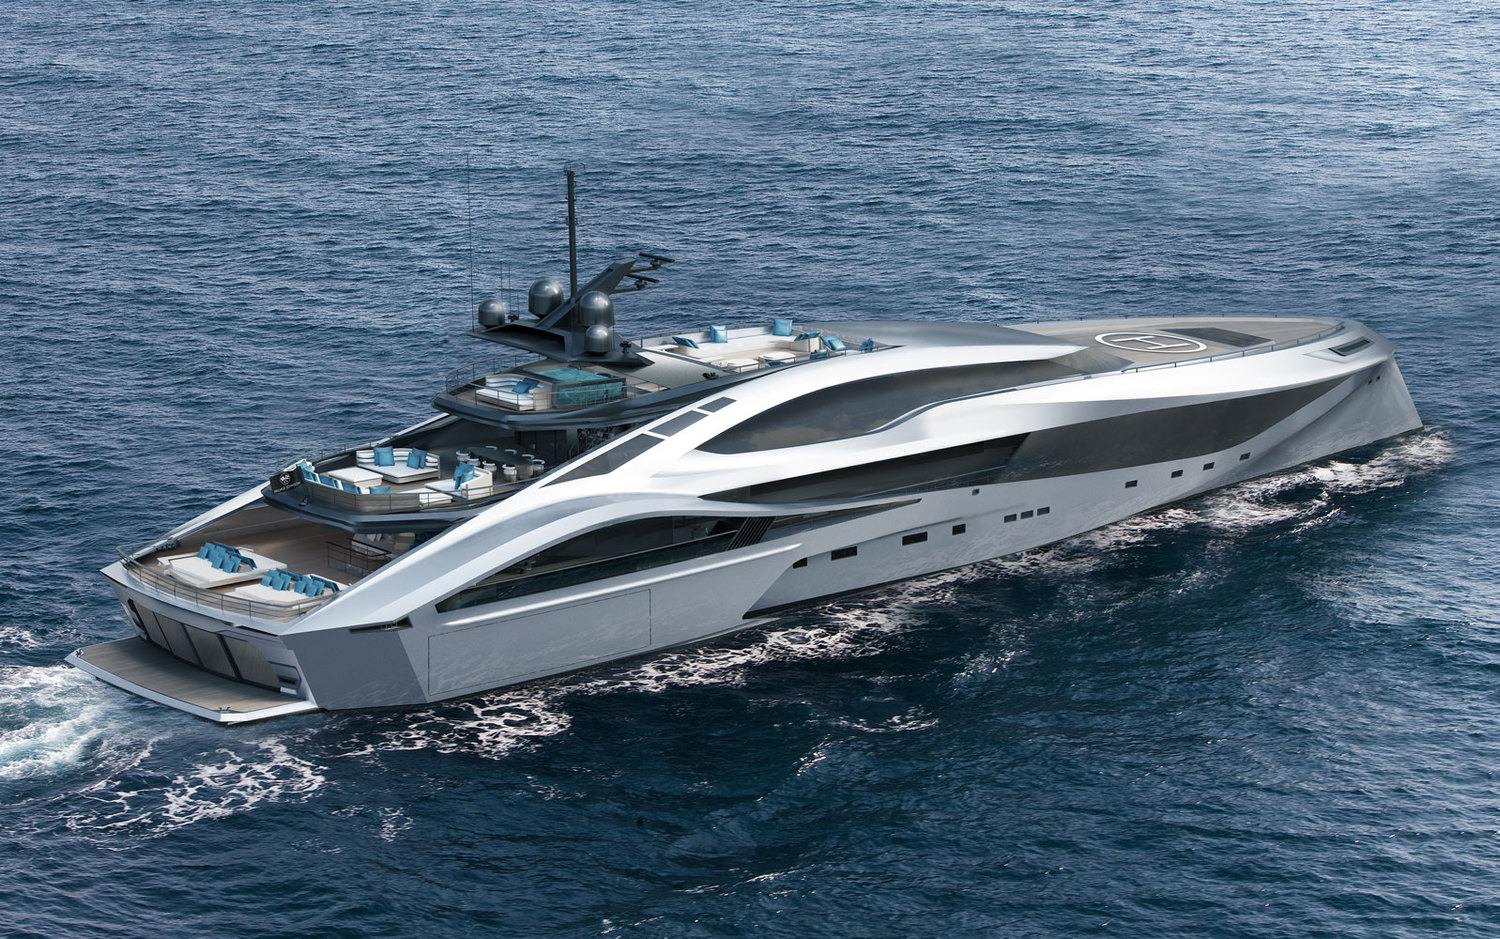 009-Recovered2 - Copy — Yacht Charter & Superyacht News